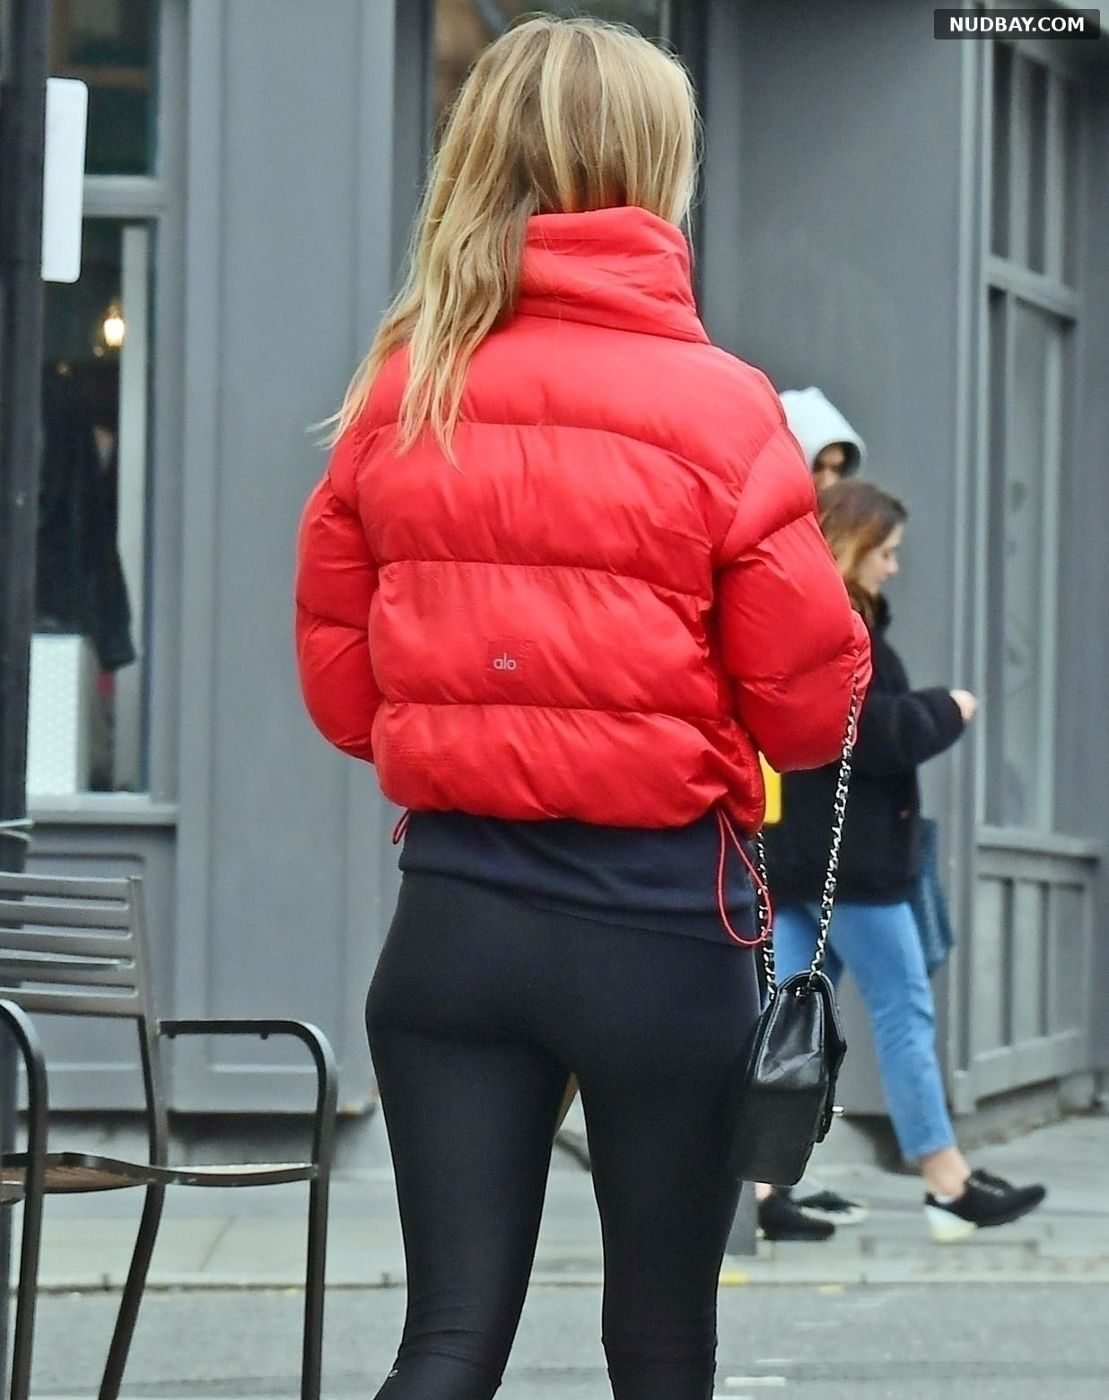 Kimberley Garner booty out in Notting Hill London May 23 2021